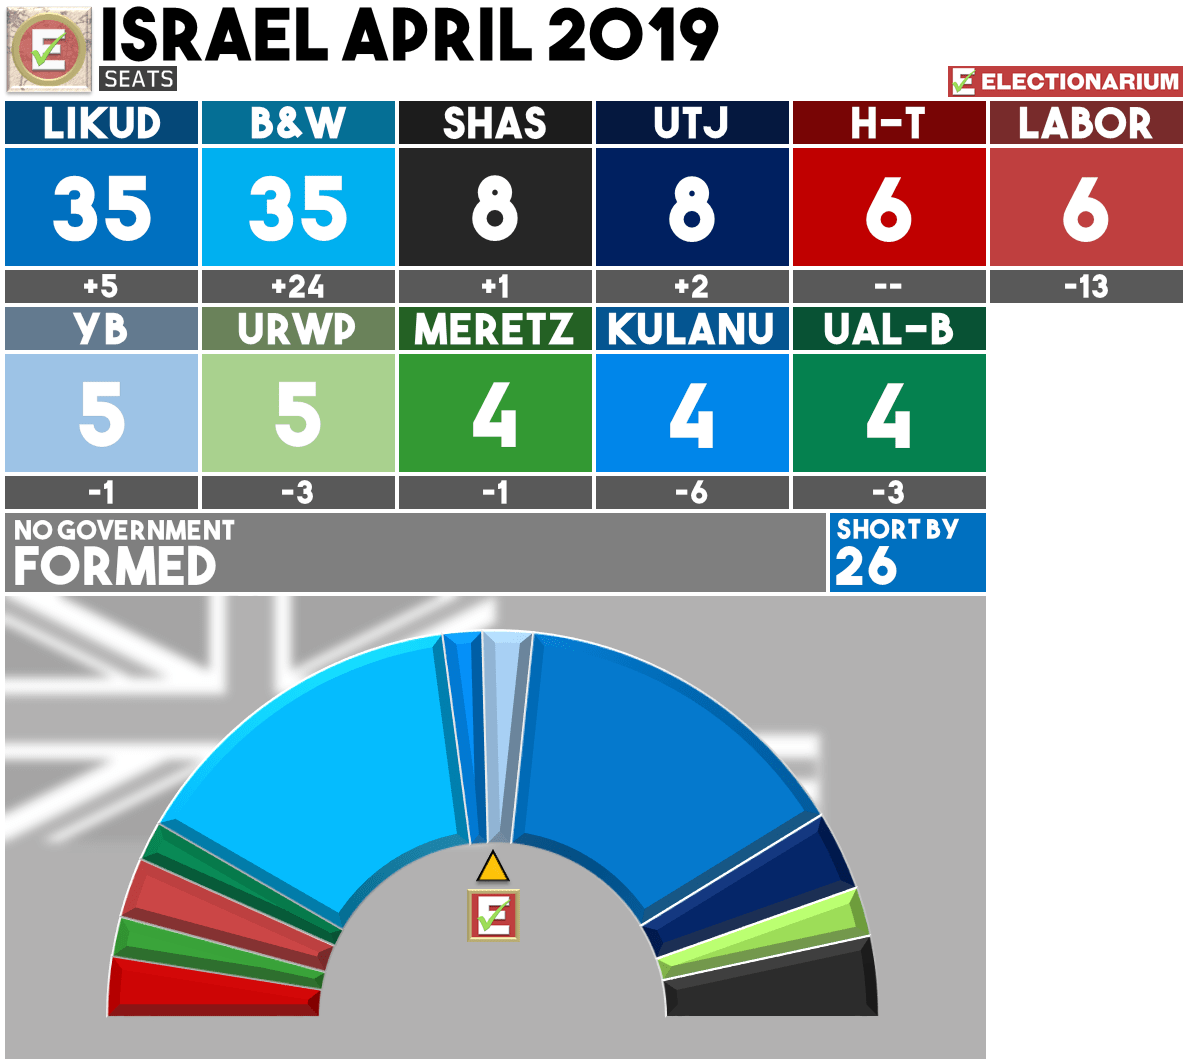 April 2019 Israel Election Results - Seats